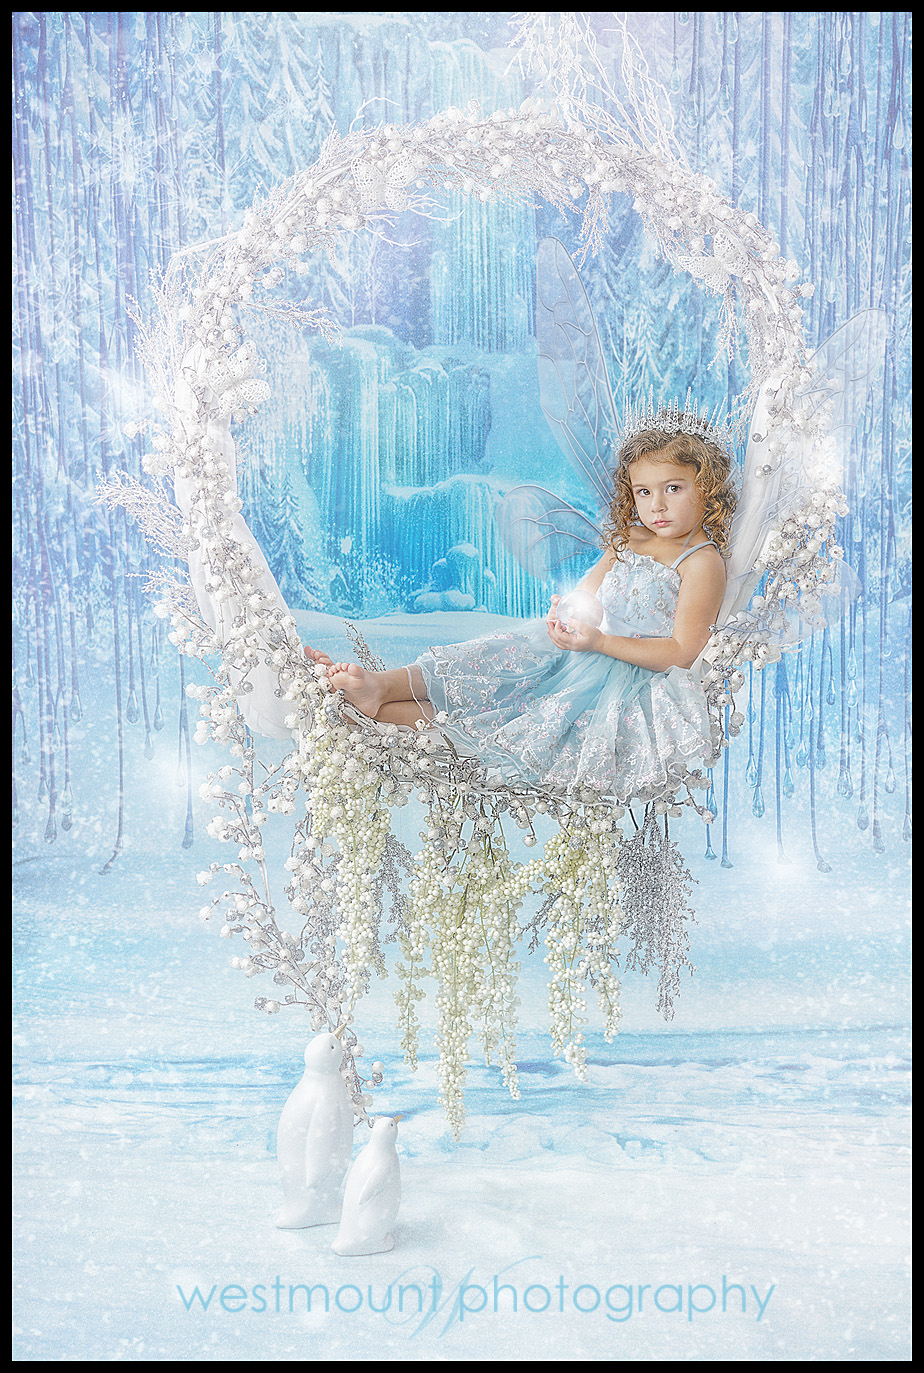 Ice fairies are cool and artful…